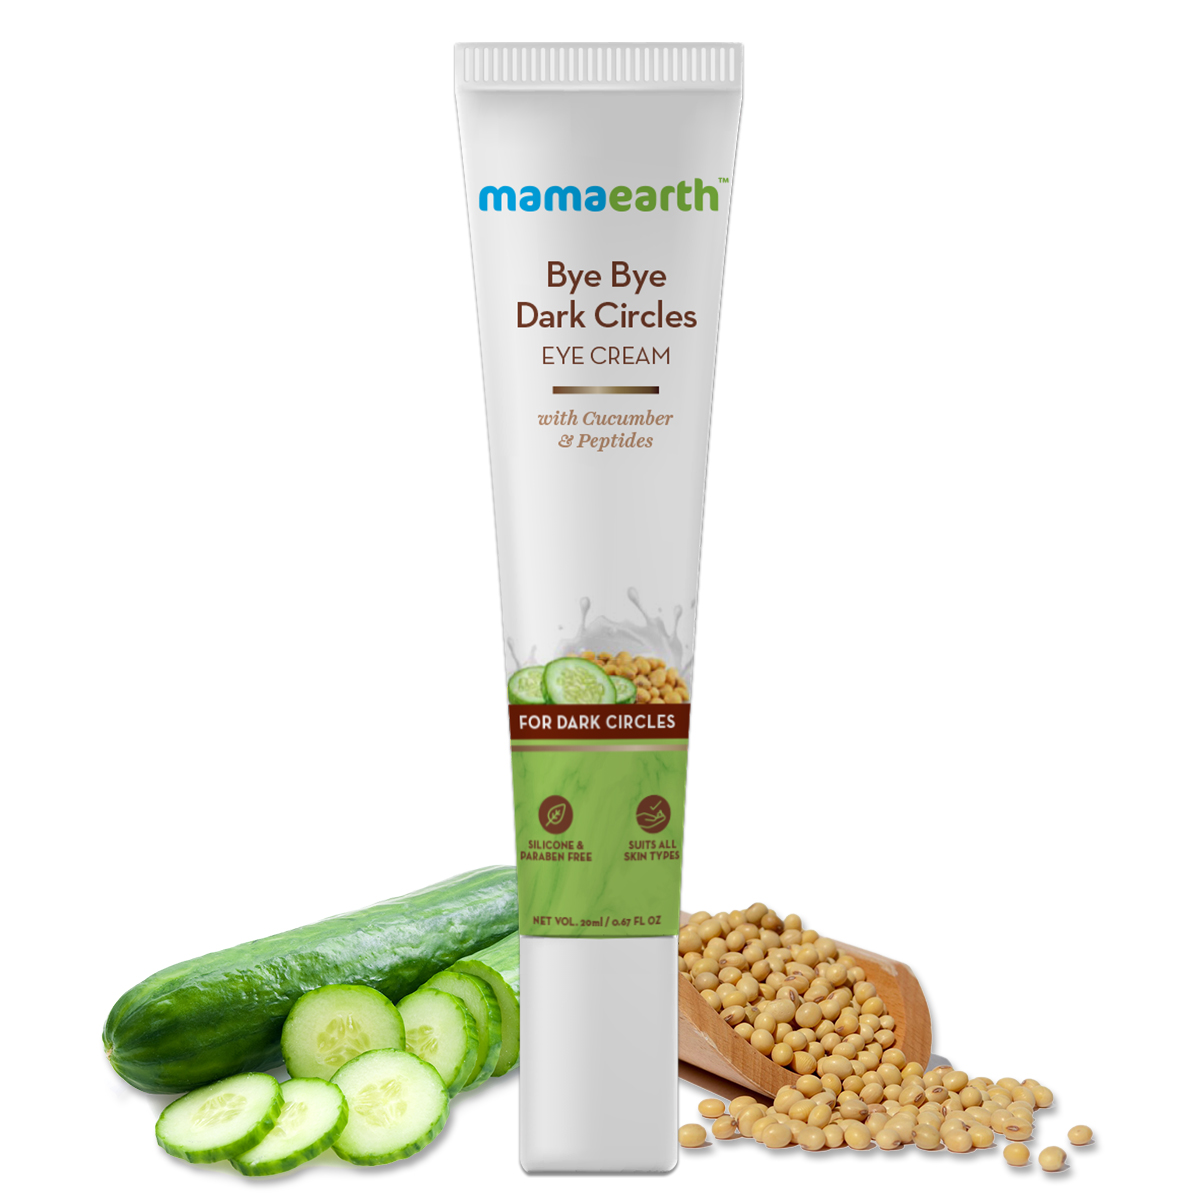 MamaearthBye Bye Dark Circles, Under Eye Cream for Dark Circles, with Cucumber & Peptides - 20ml